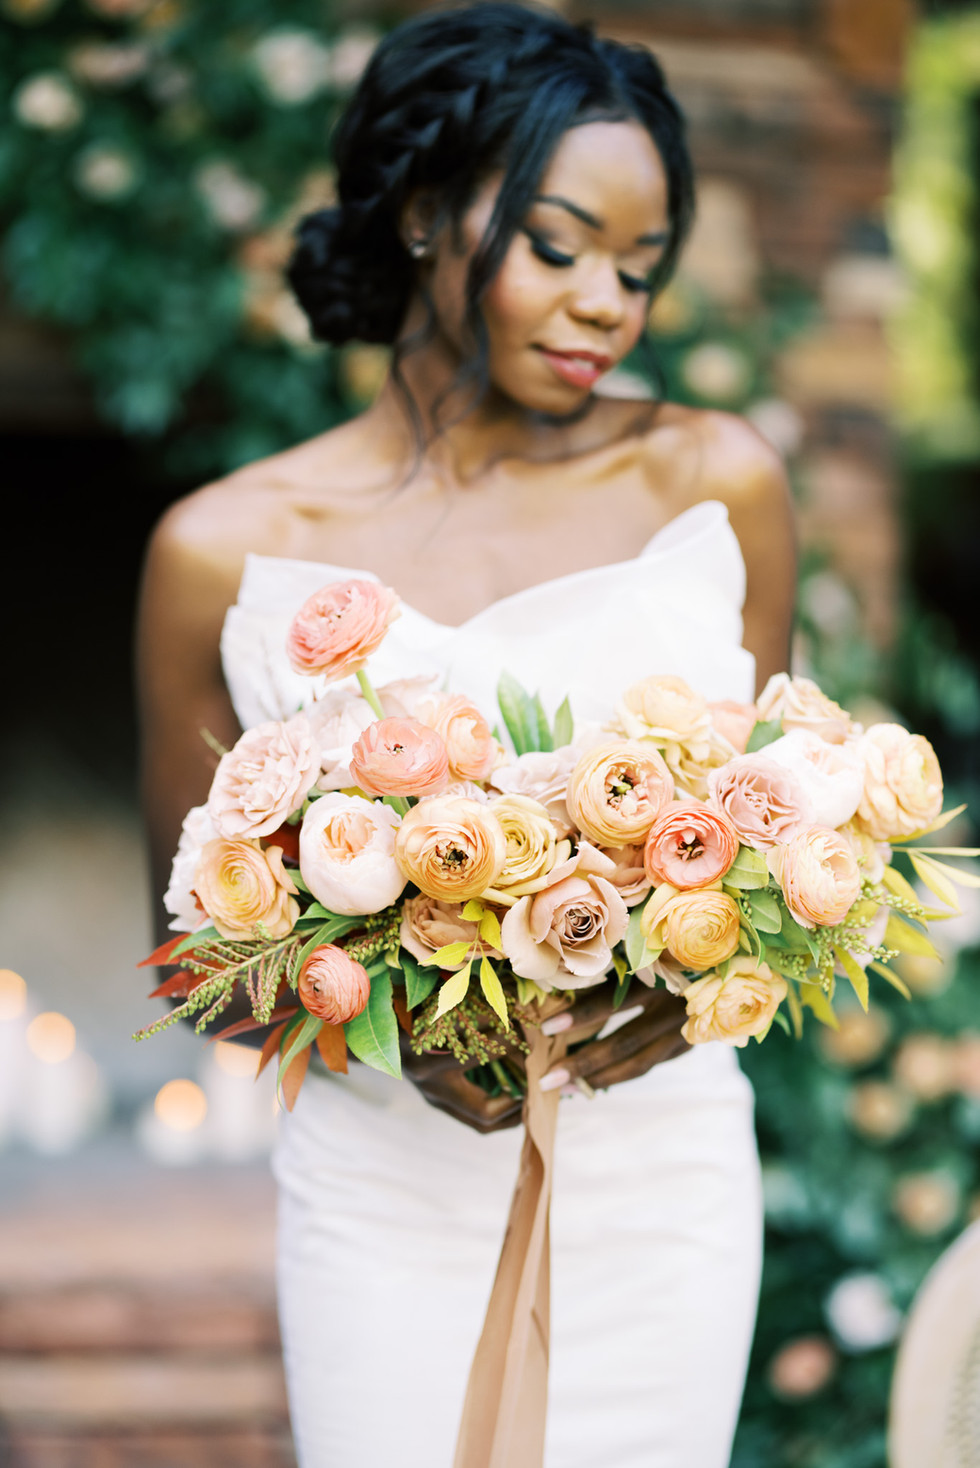 Bridal bouquet with roses and ranunculus in shades of coral, peach, taupe, and mustard. Photo: Kristen Kay